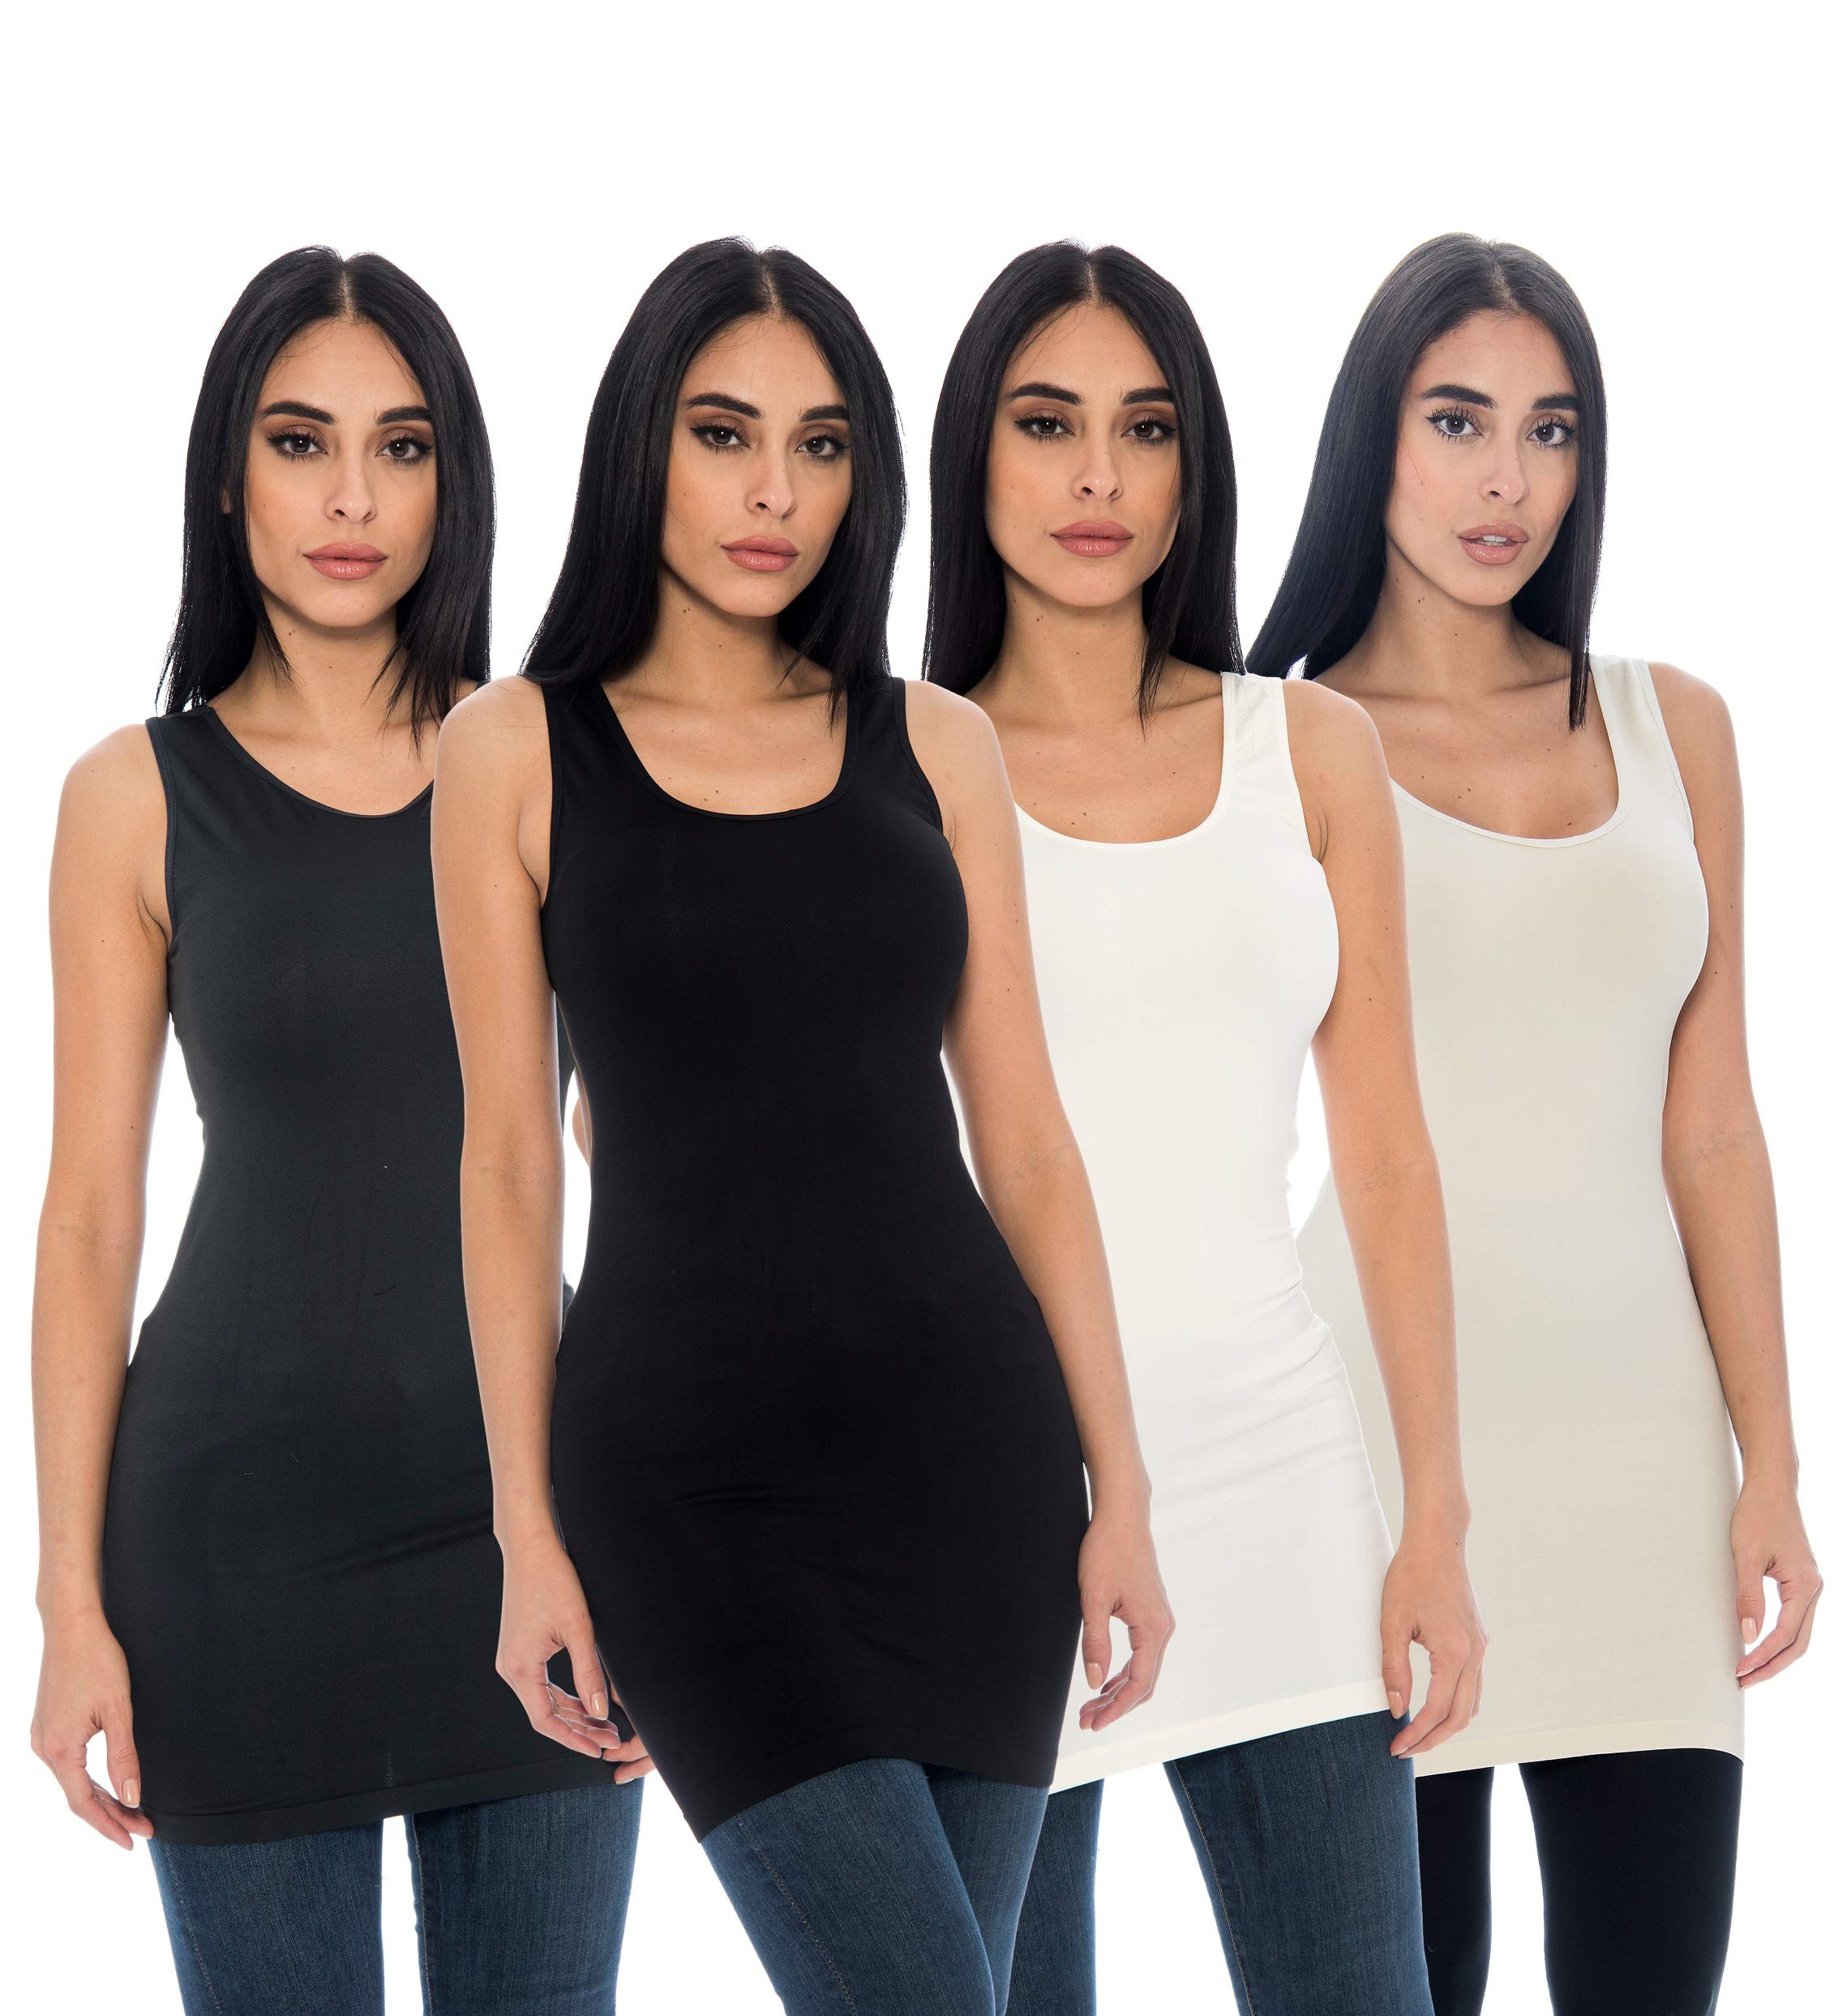 Unique Styles Seamless Long Tank Top Stretch Camisole Layering Top Regular Plus Size Pack of 4